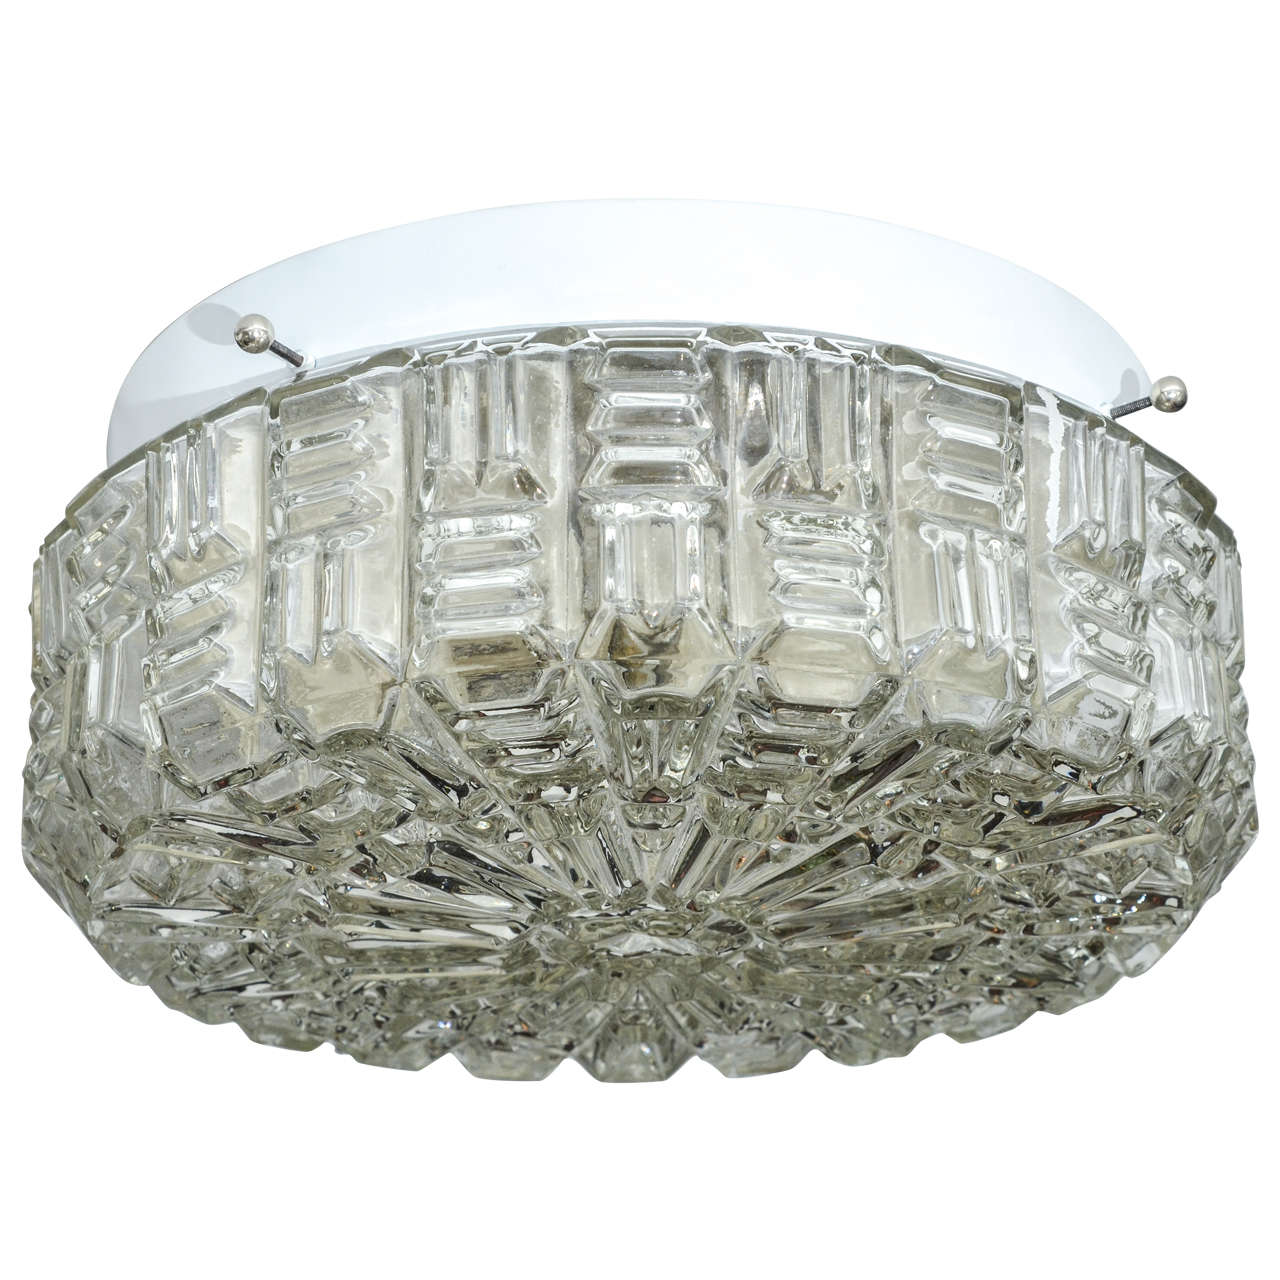 Clear textured glass flush mount ceiling fixture for sale at 1stdibs clear textured glass flush mount ceiling fixture for sale aloadofball Choice Image